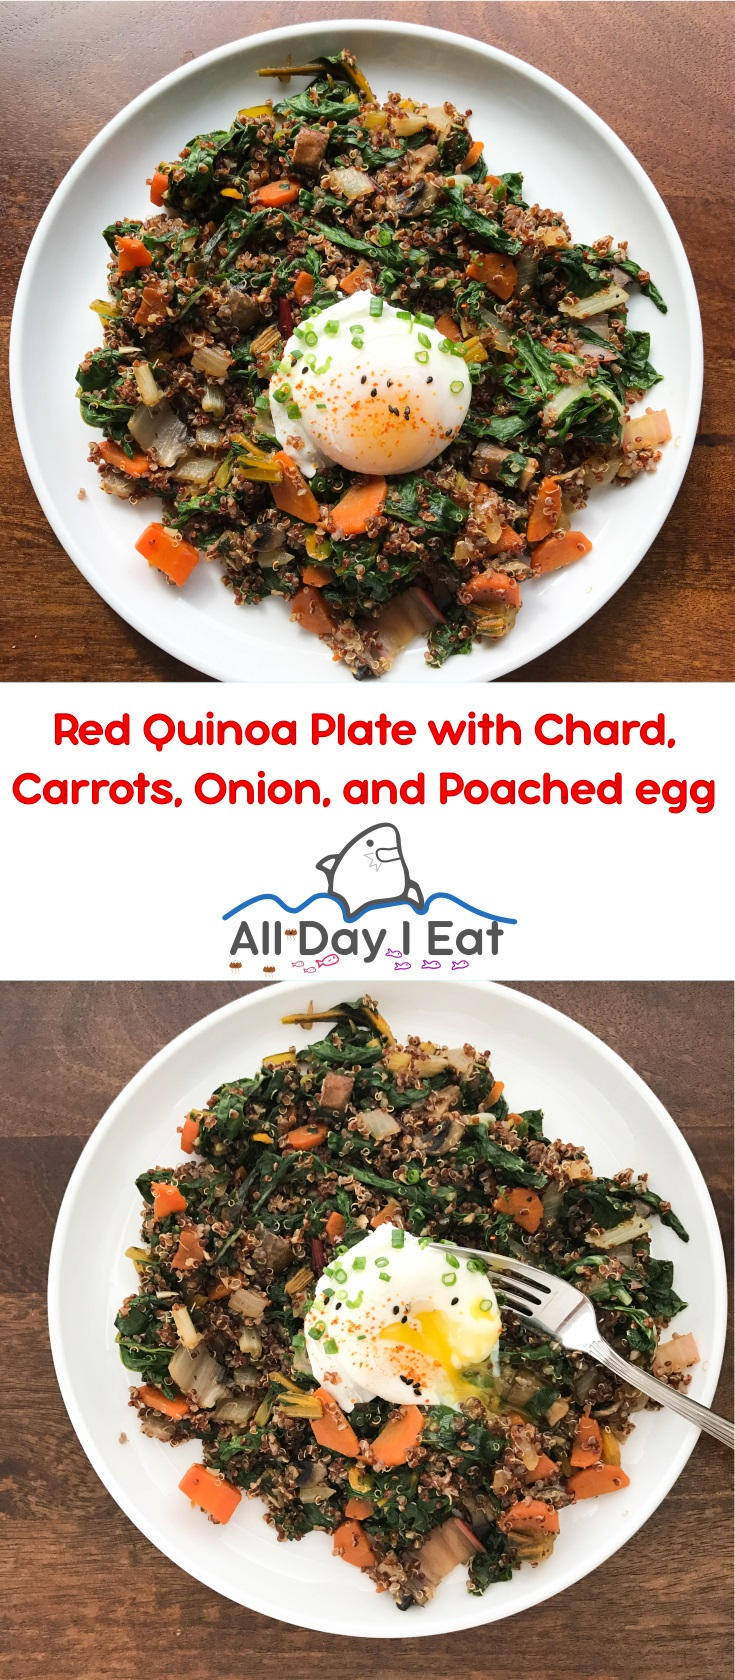 Red Quinoa Plate with Chard, Carrots, Onion, and Poached Egg| www.alldayieat.com